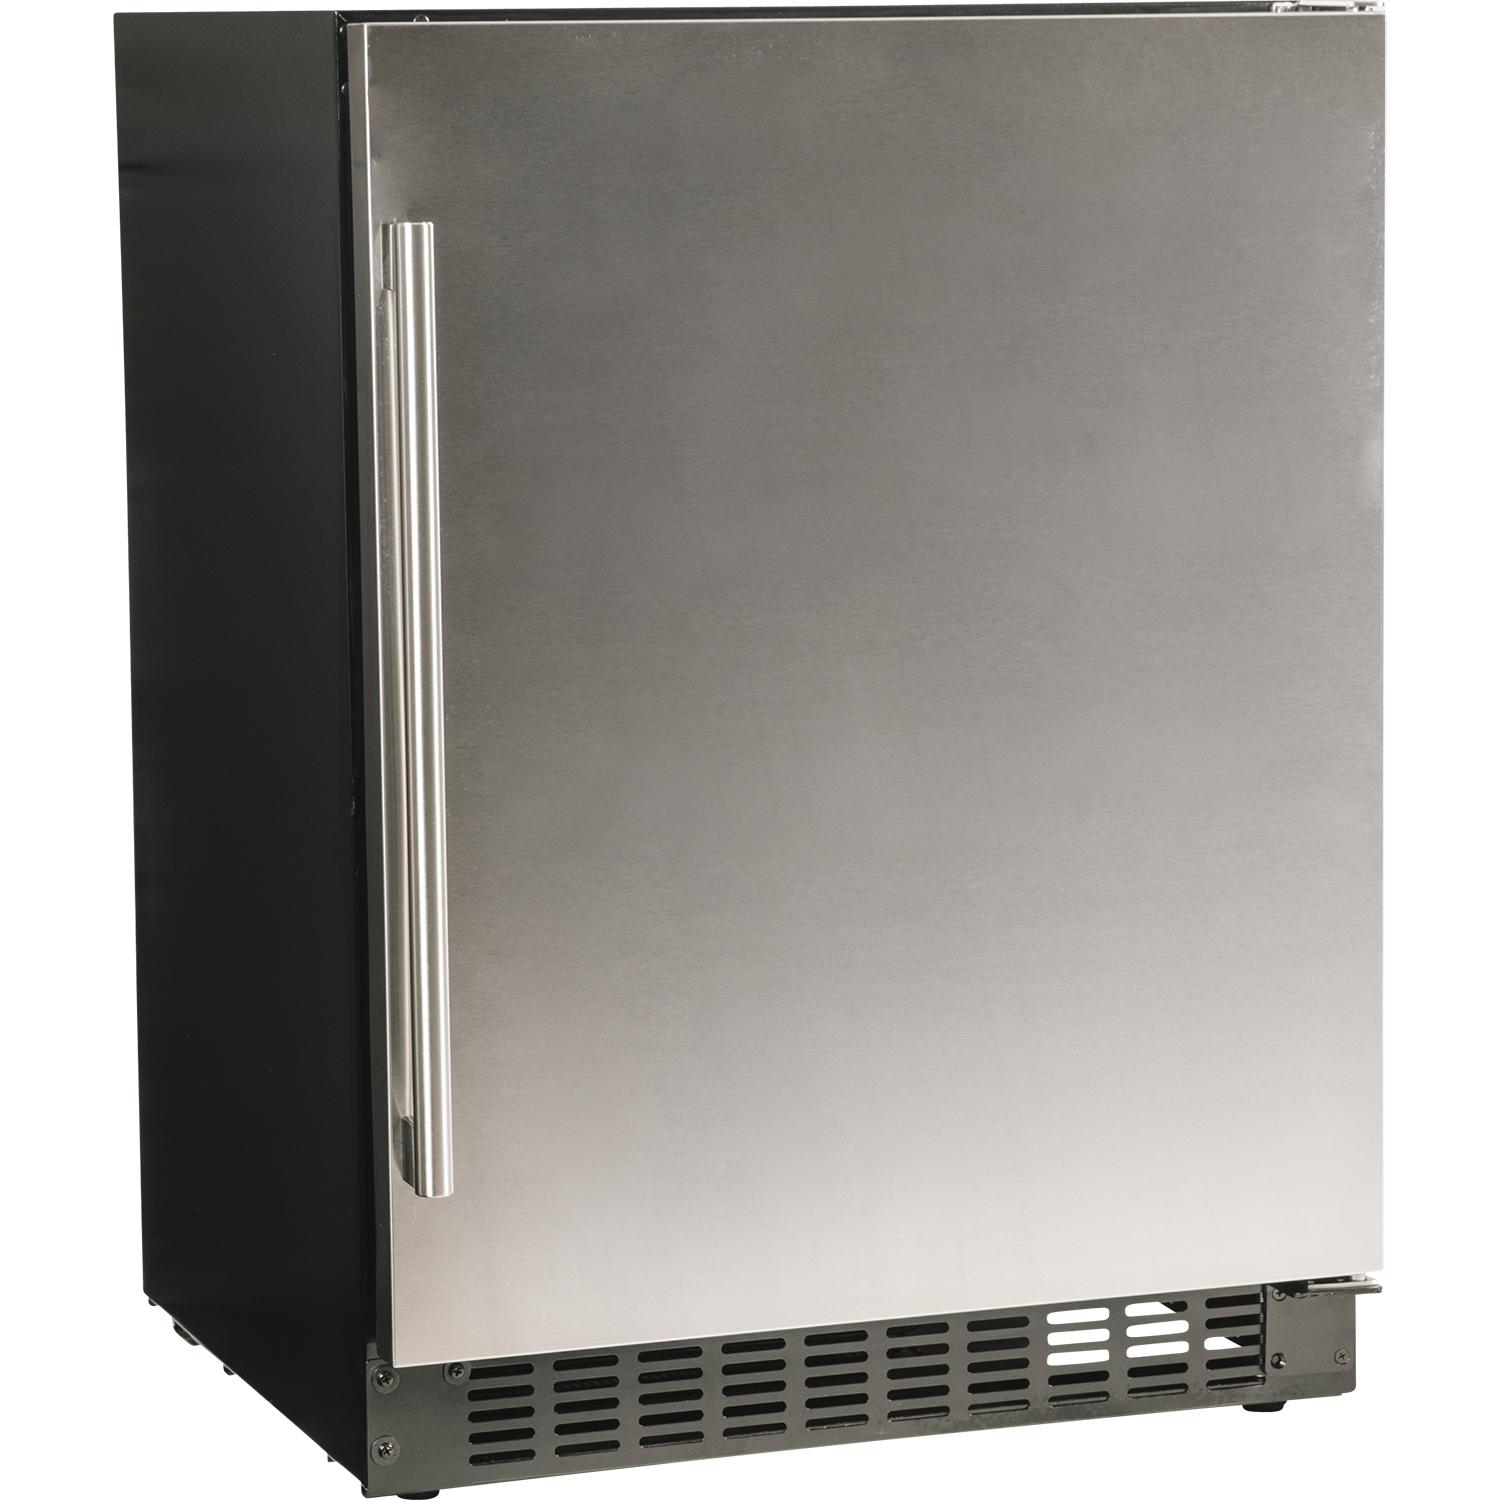 """Azure 24"""" 5.1 Cu. Ft. Compact Refrigerator - Stainless Steel - A124r-s"""